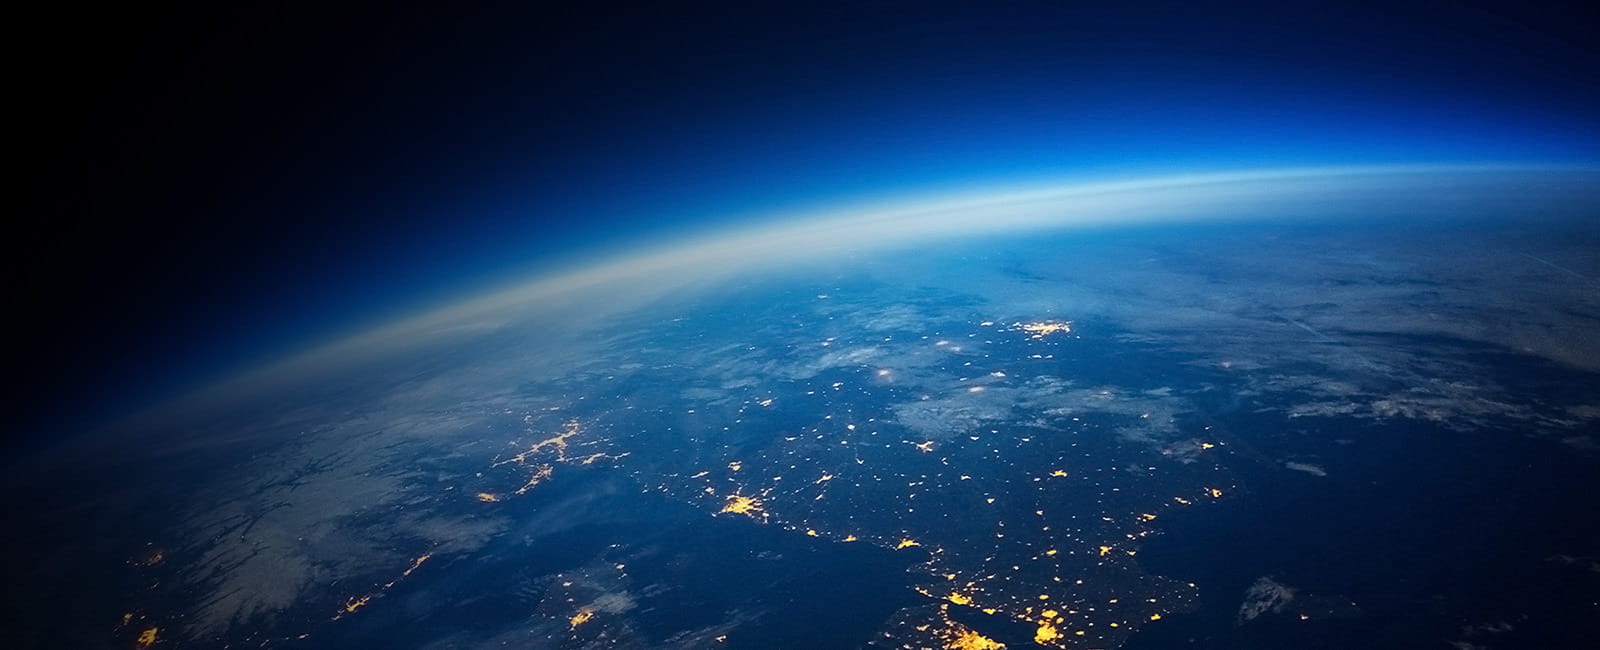 Wide shot of Earth at night